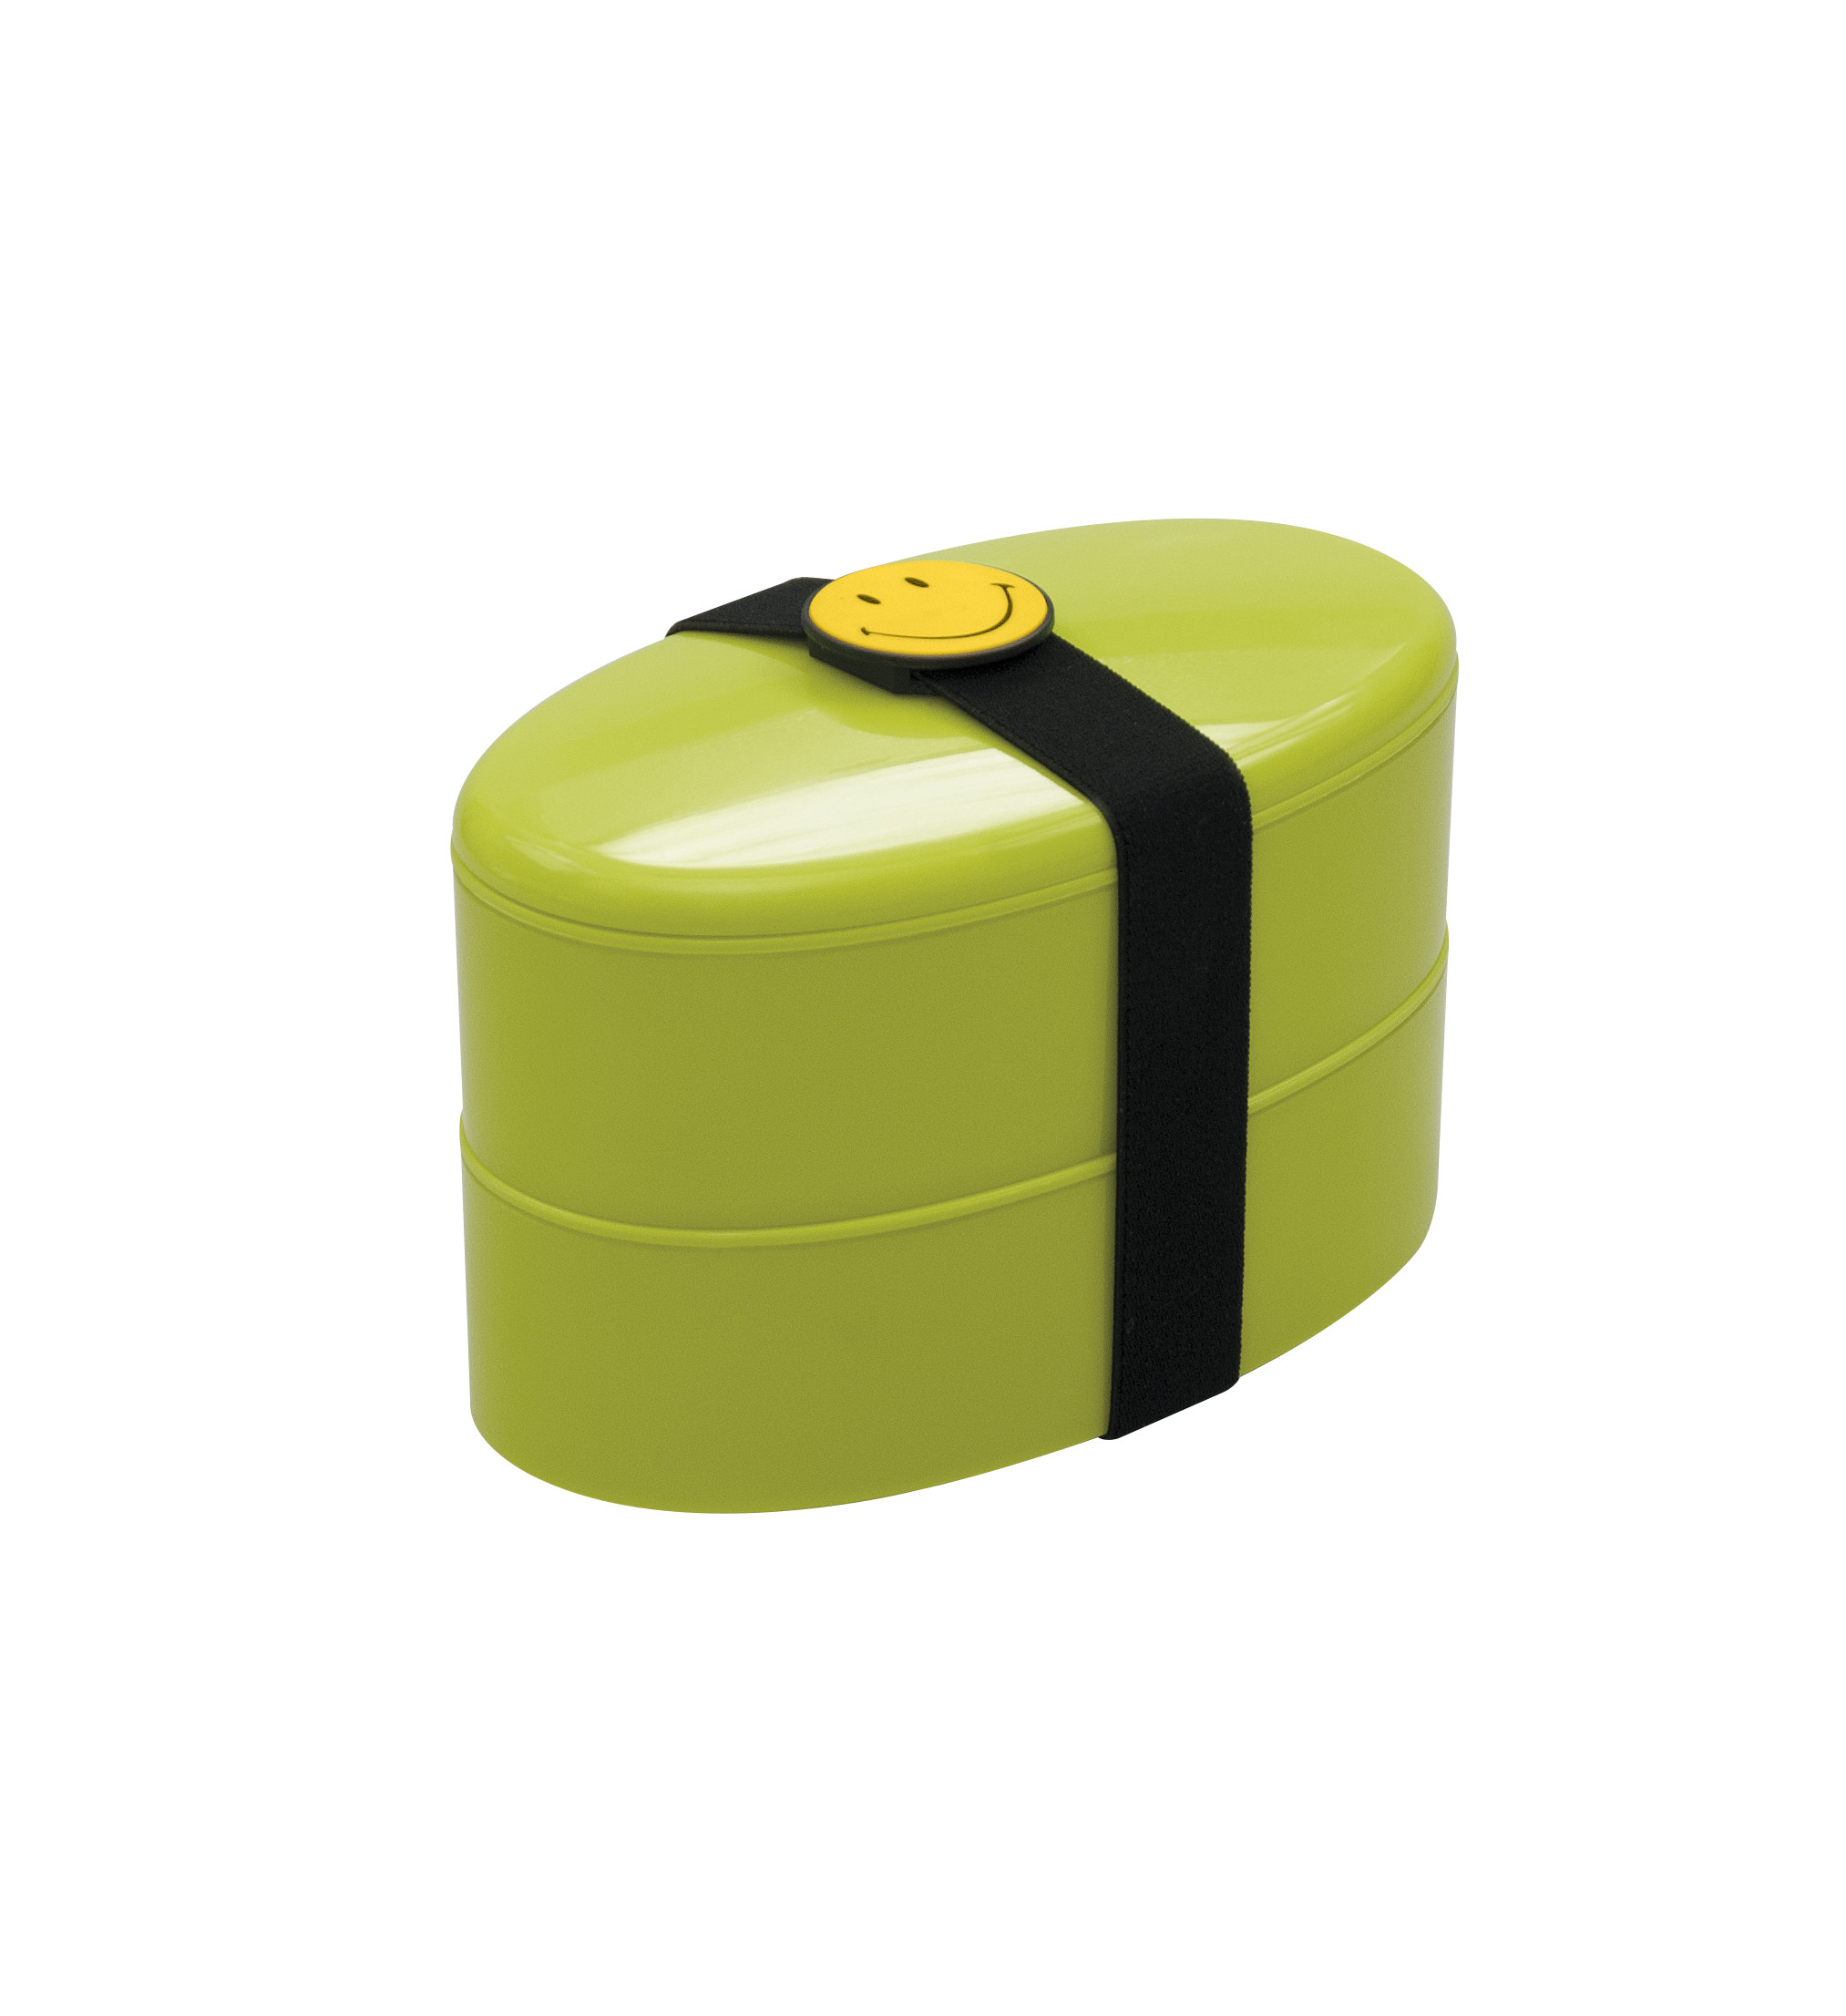 Smiley lunch box avec couverts - 18 x 10 cm - Vert